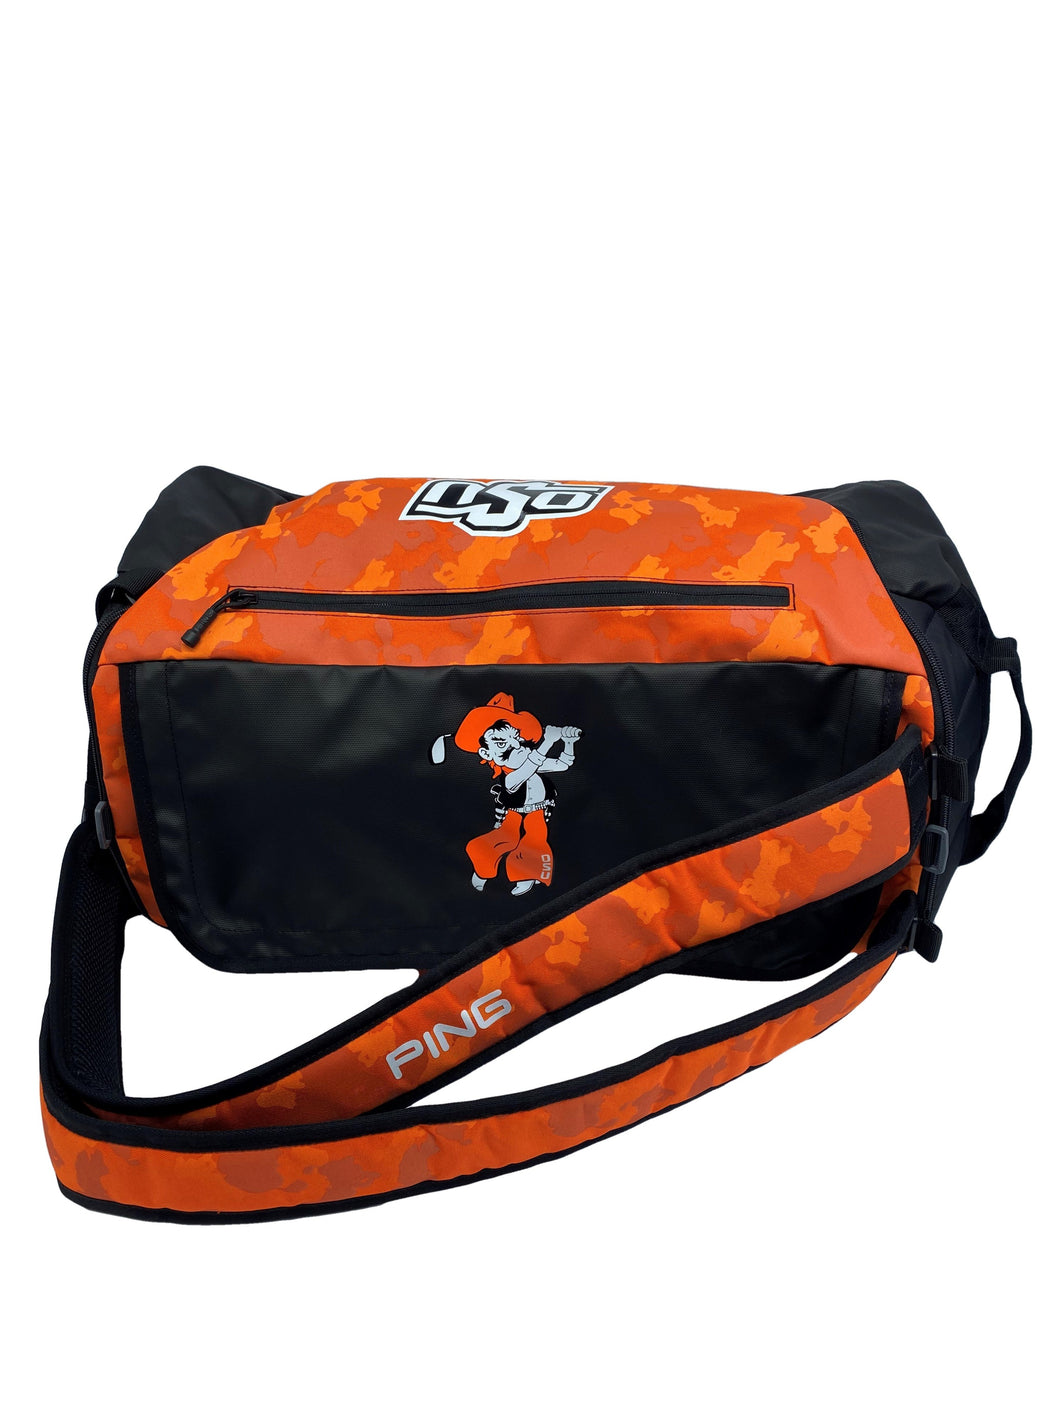 Ping Duffle Bag - Orange Camo Pete